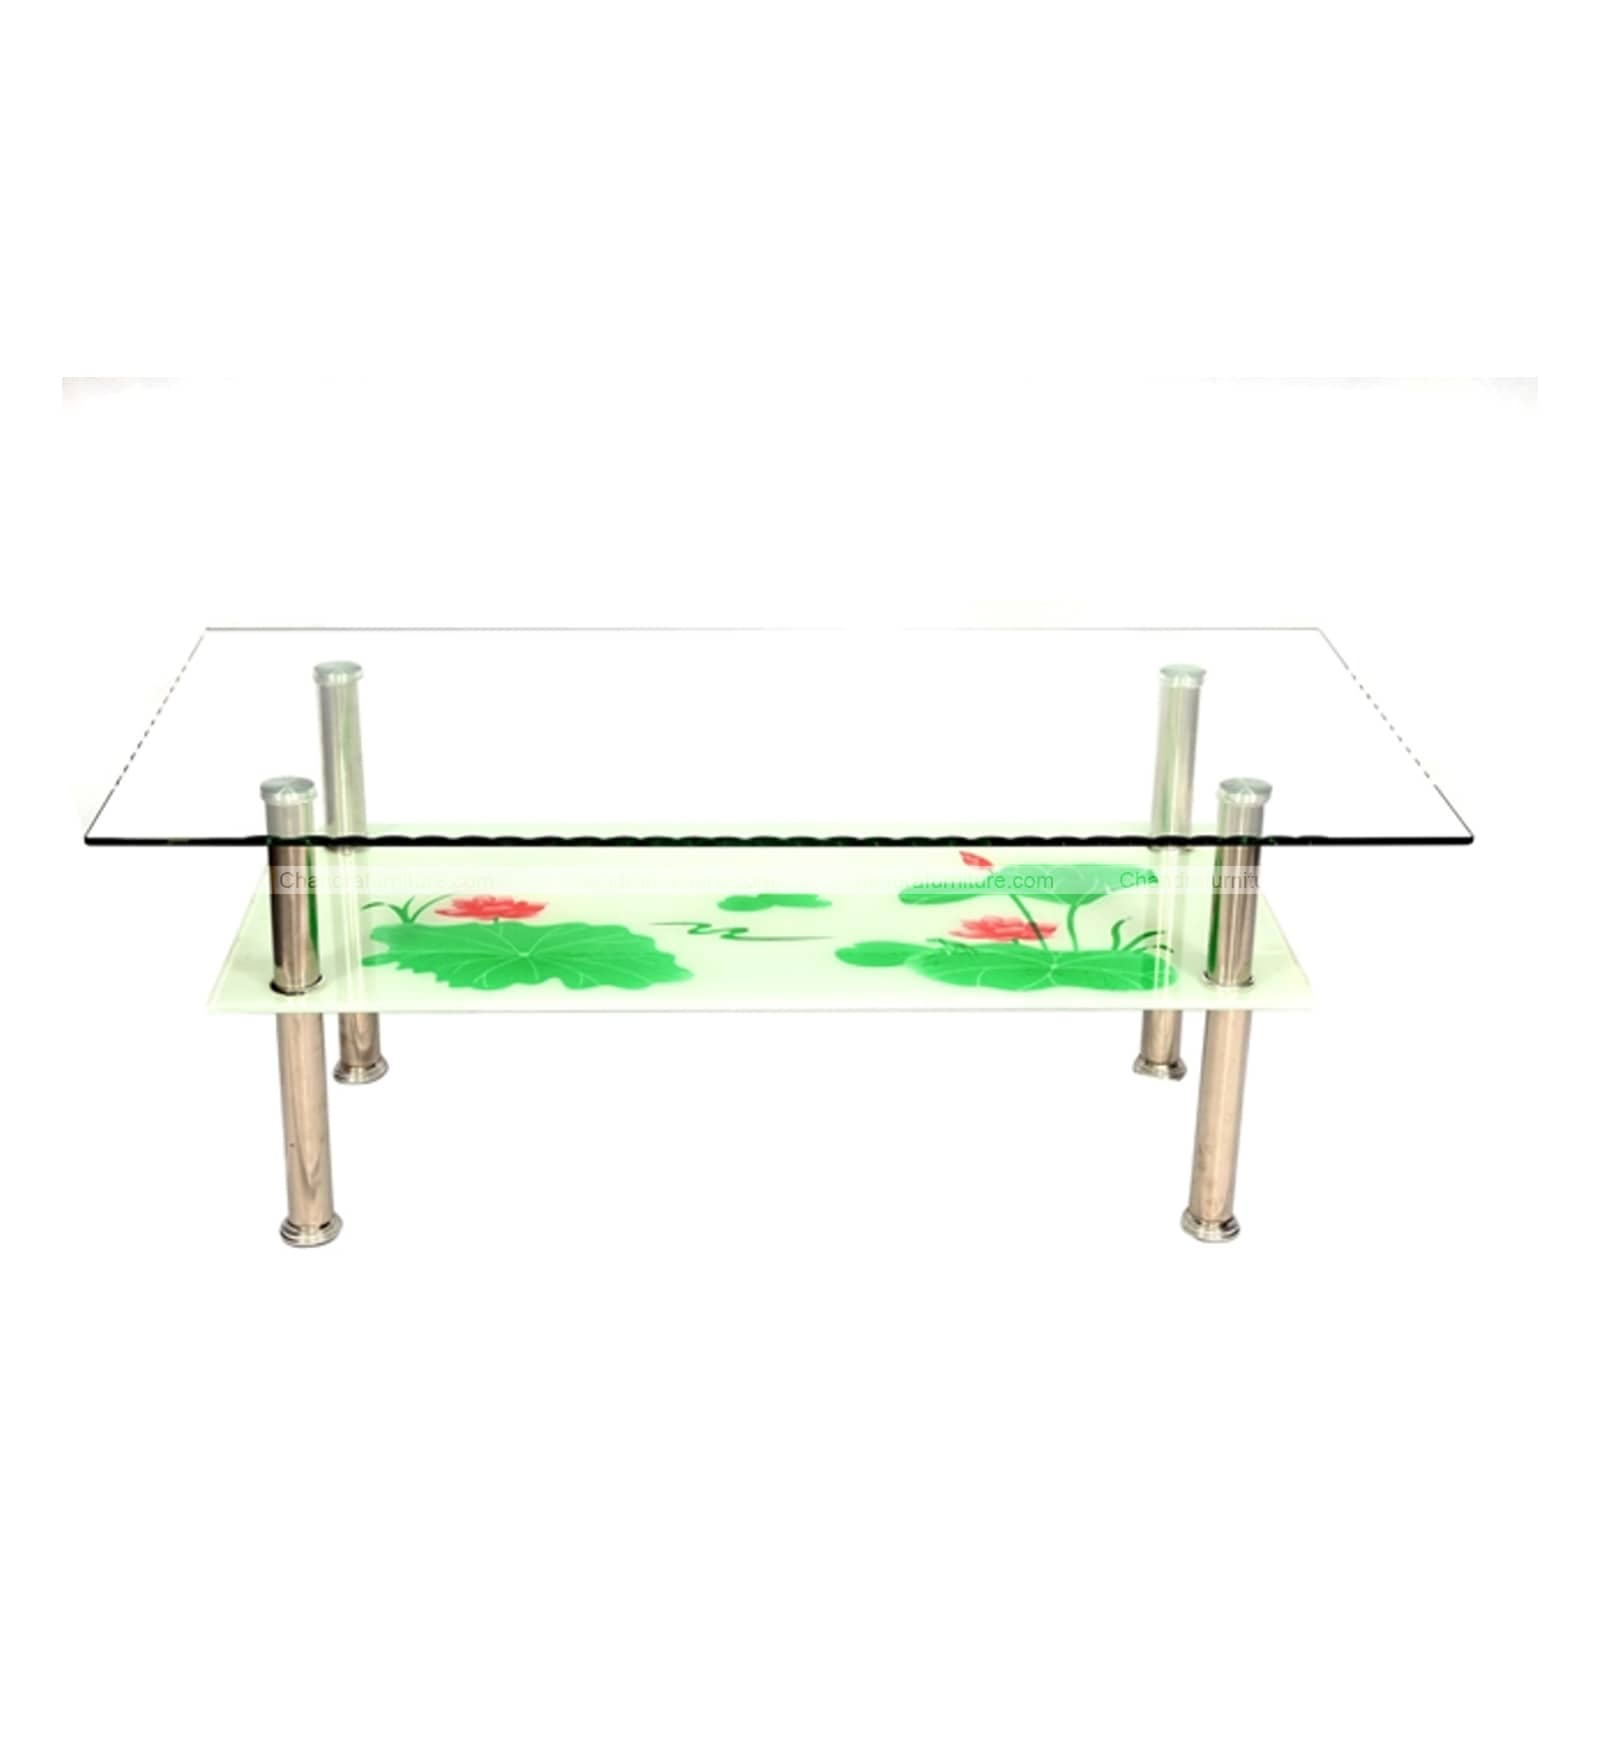 CHANDRA FURNITURE CENTER TABLE  A-14